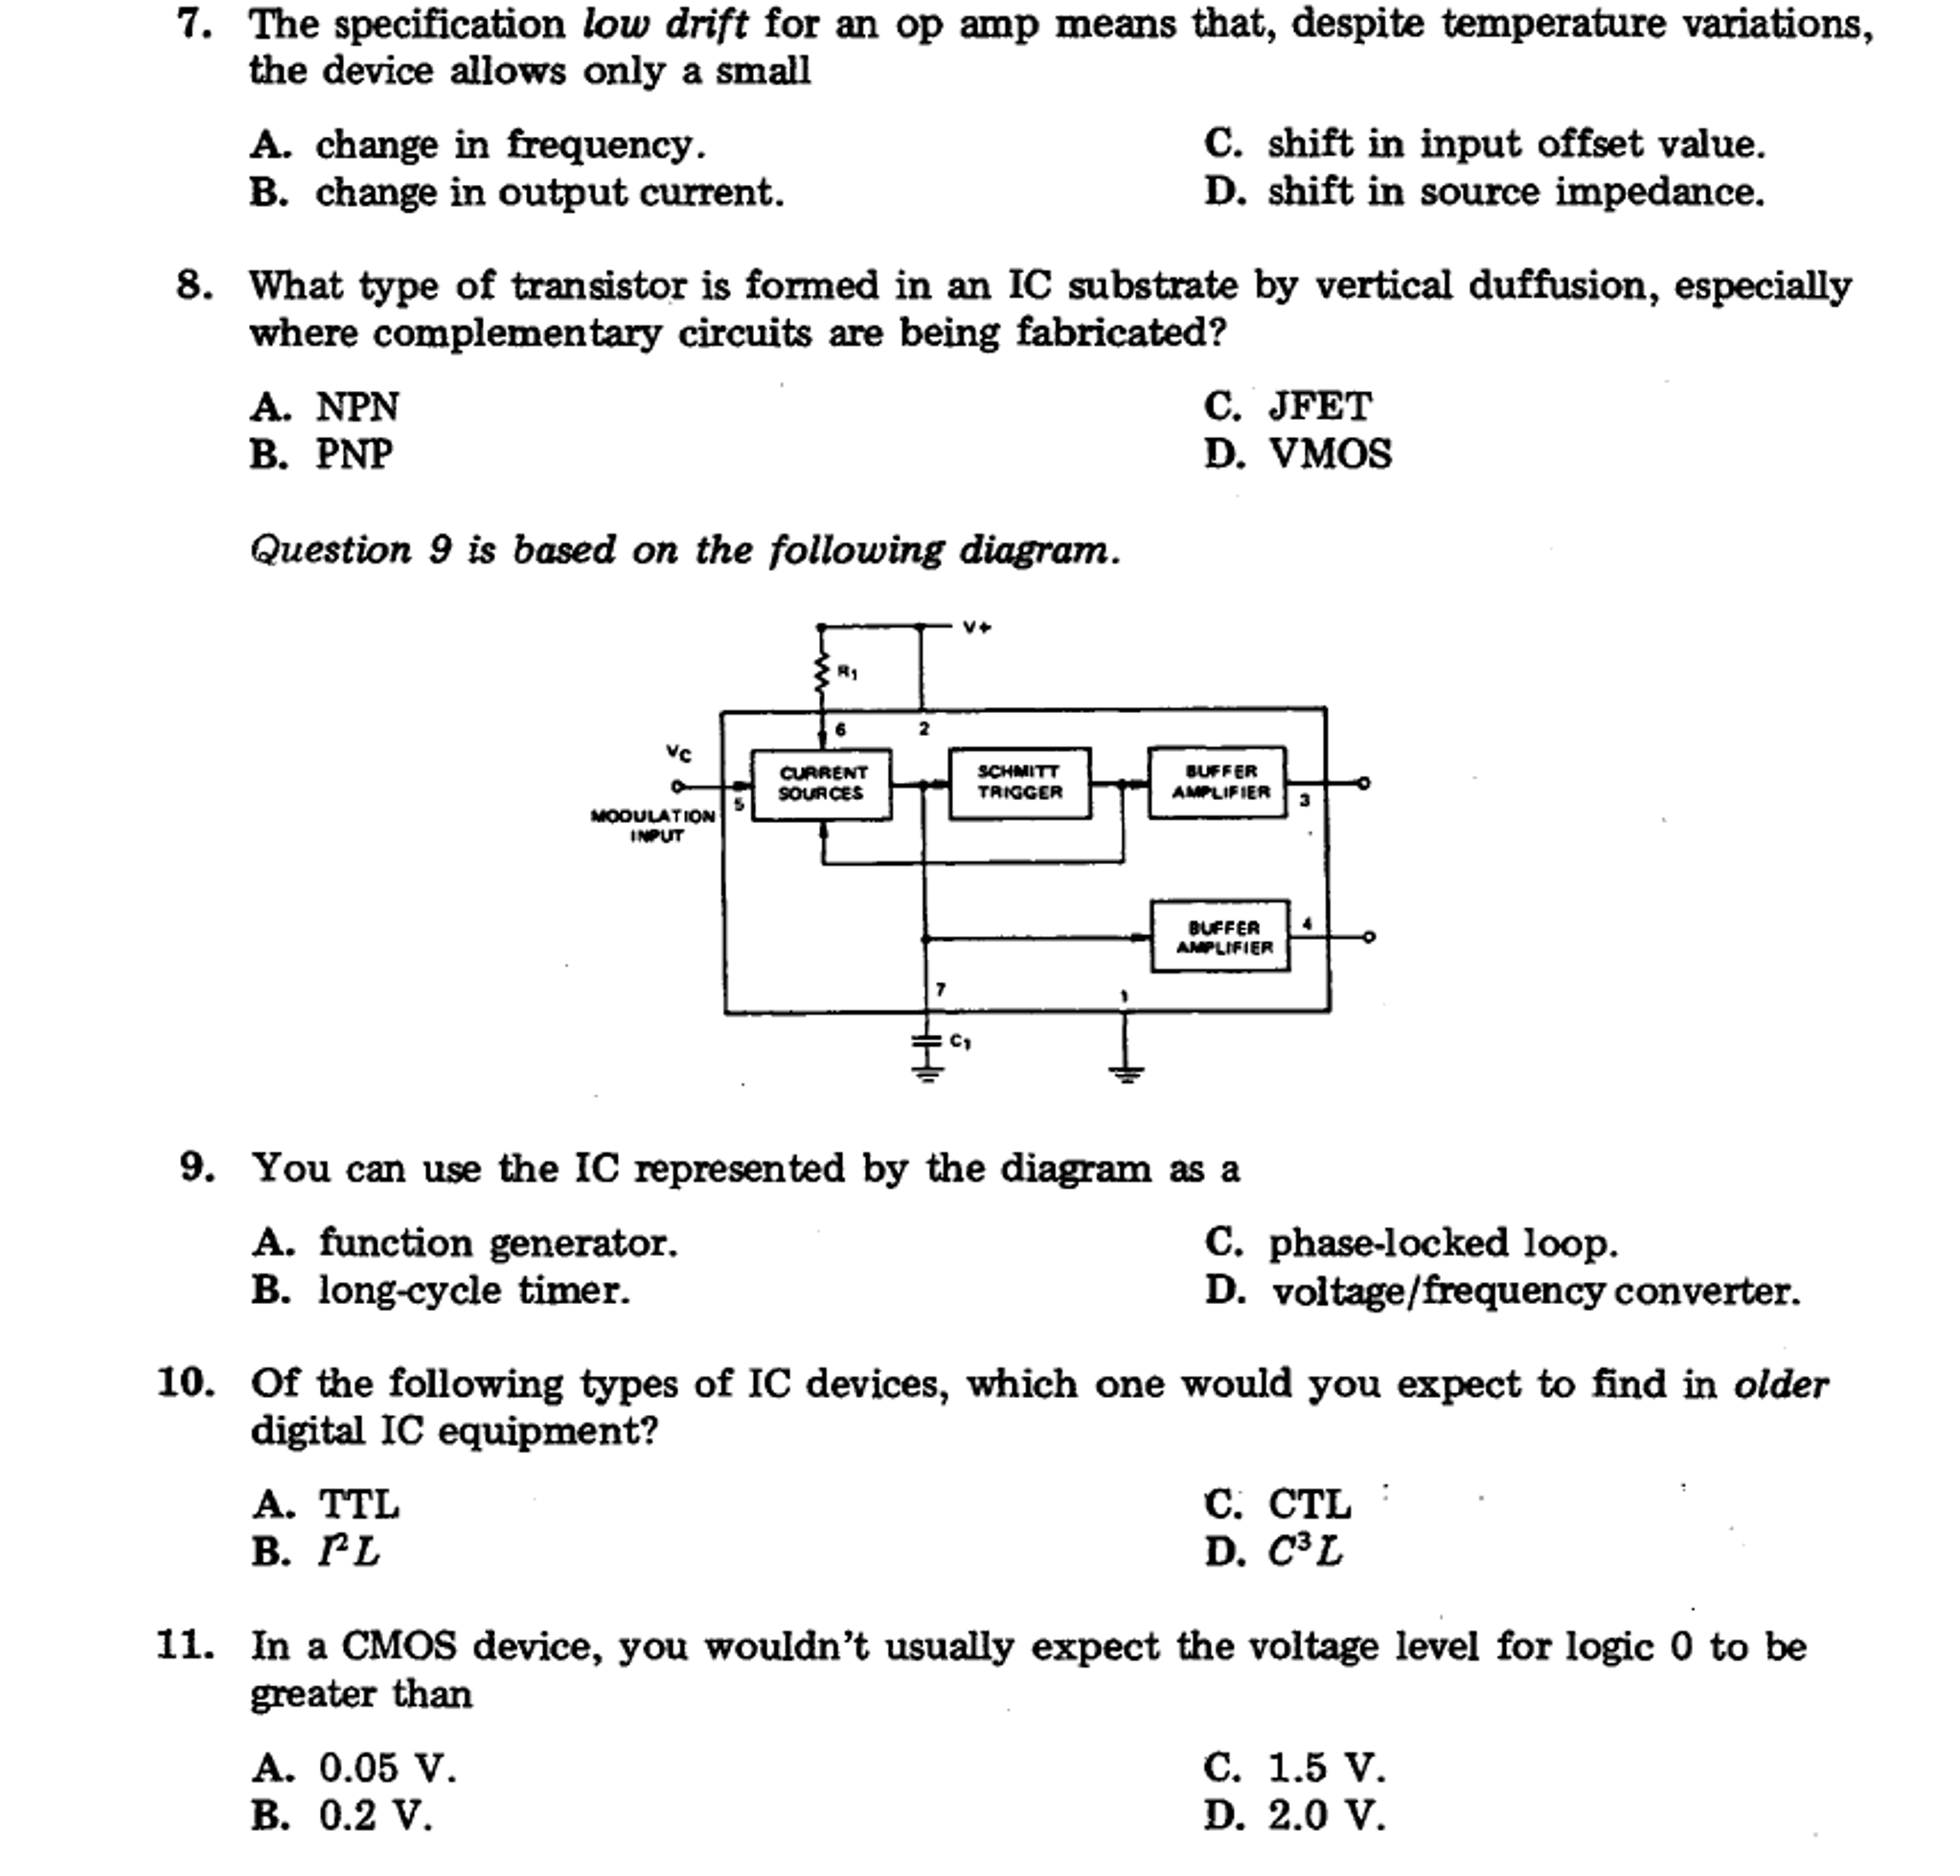 Solved: The Specification Low Drift For An Op Amp Means Th